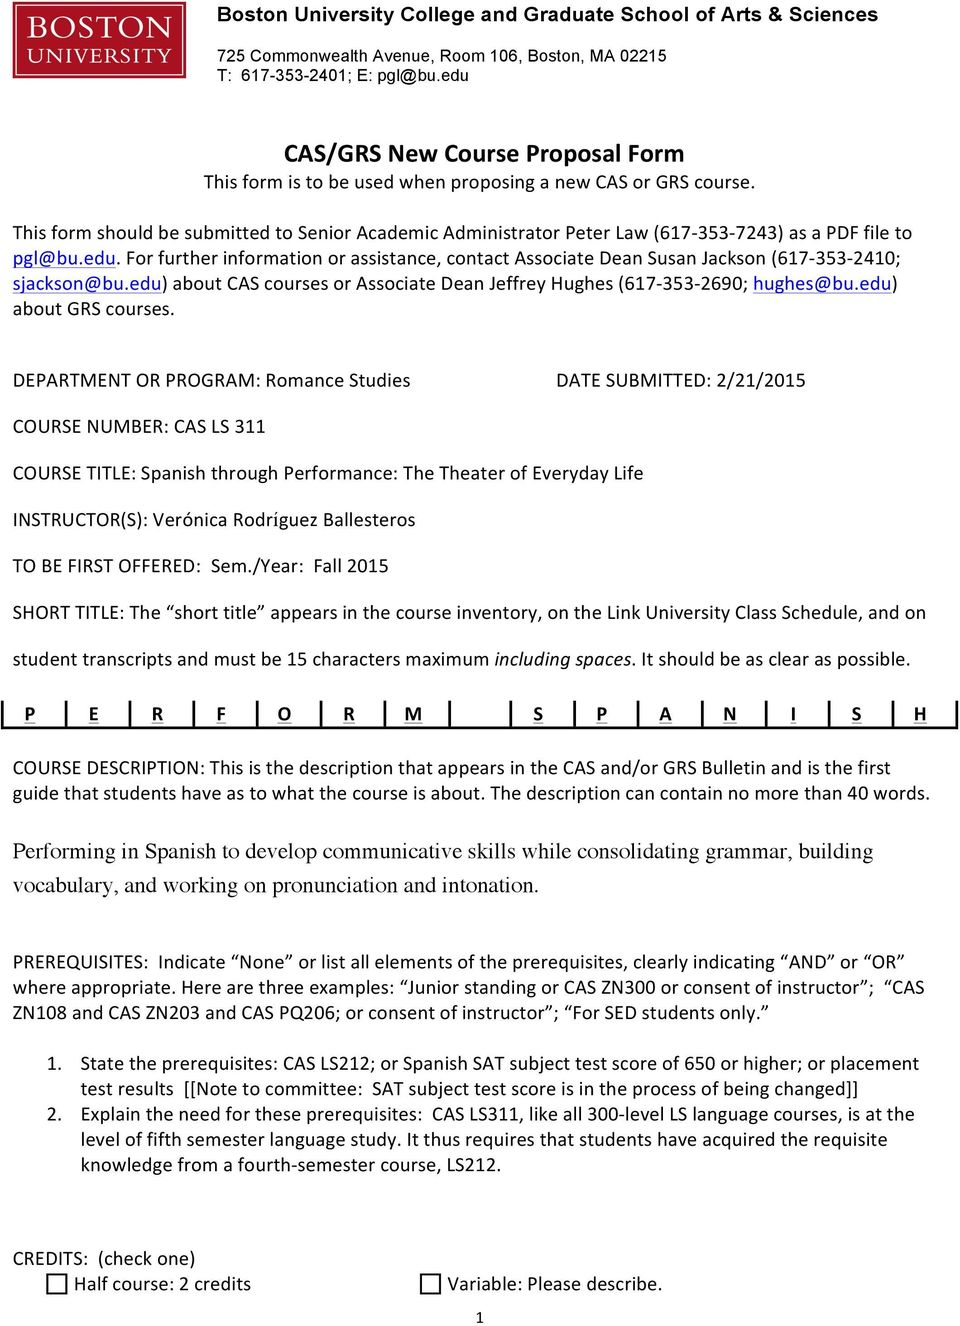 This form should be submitted to Senior Academic Administrator Peter Law (617-353- 7243) as a PDF file to pgl@bu.edu.